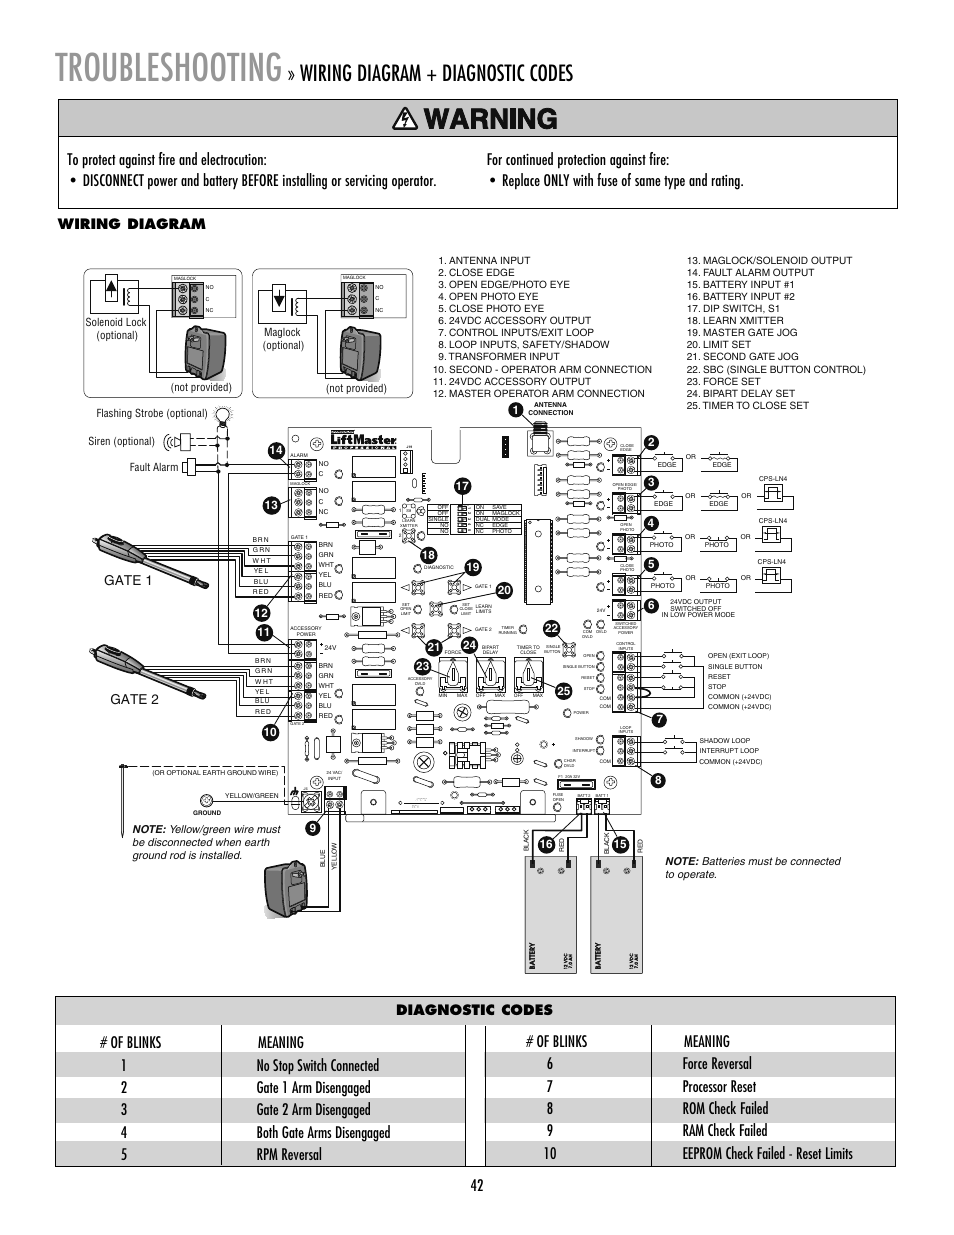 Gate Control Wiring Diagram Library Electric Motor Also With For Apollo Diagnostic Codes Troubleshooting Liftmaster La400 Residential Dc Linear Operator User